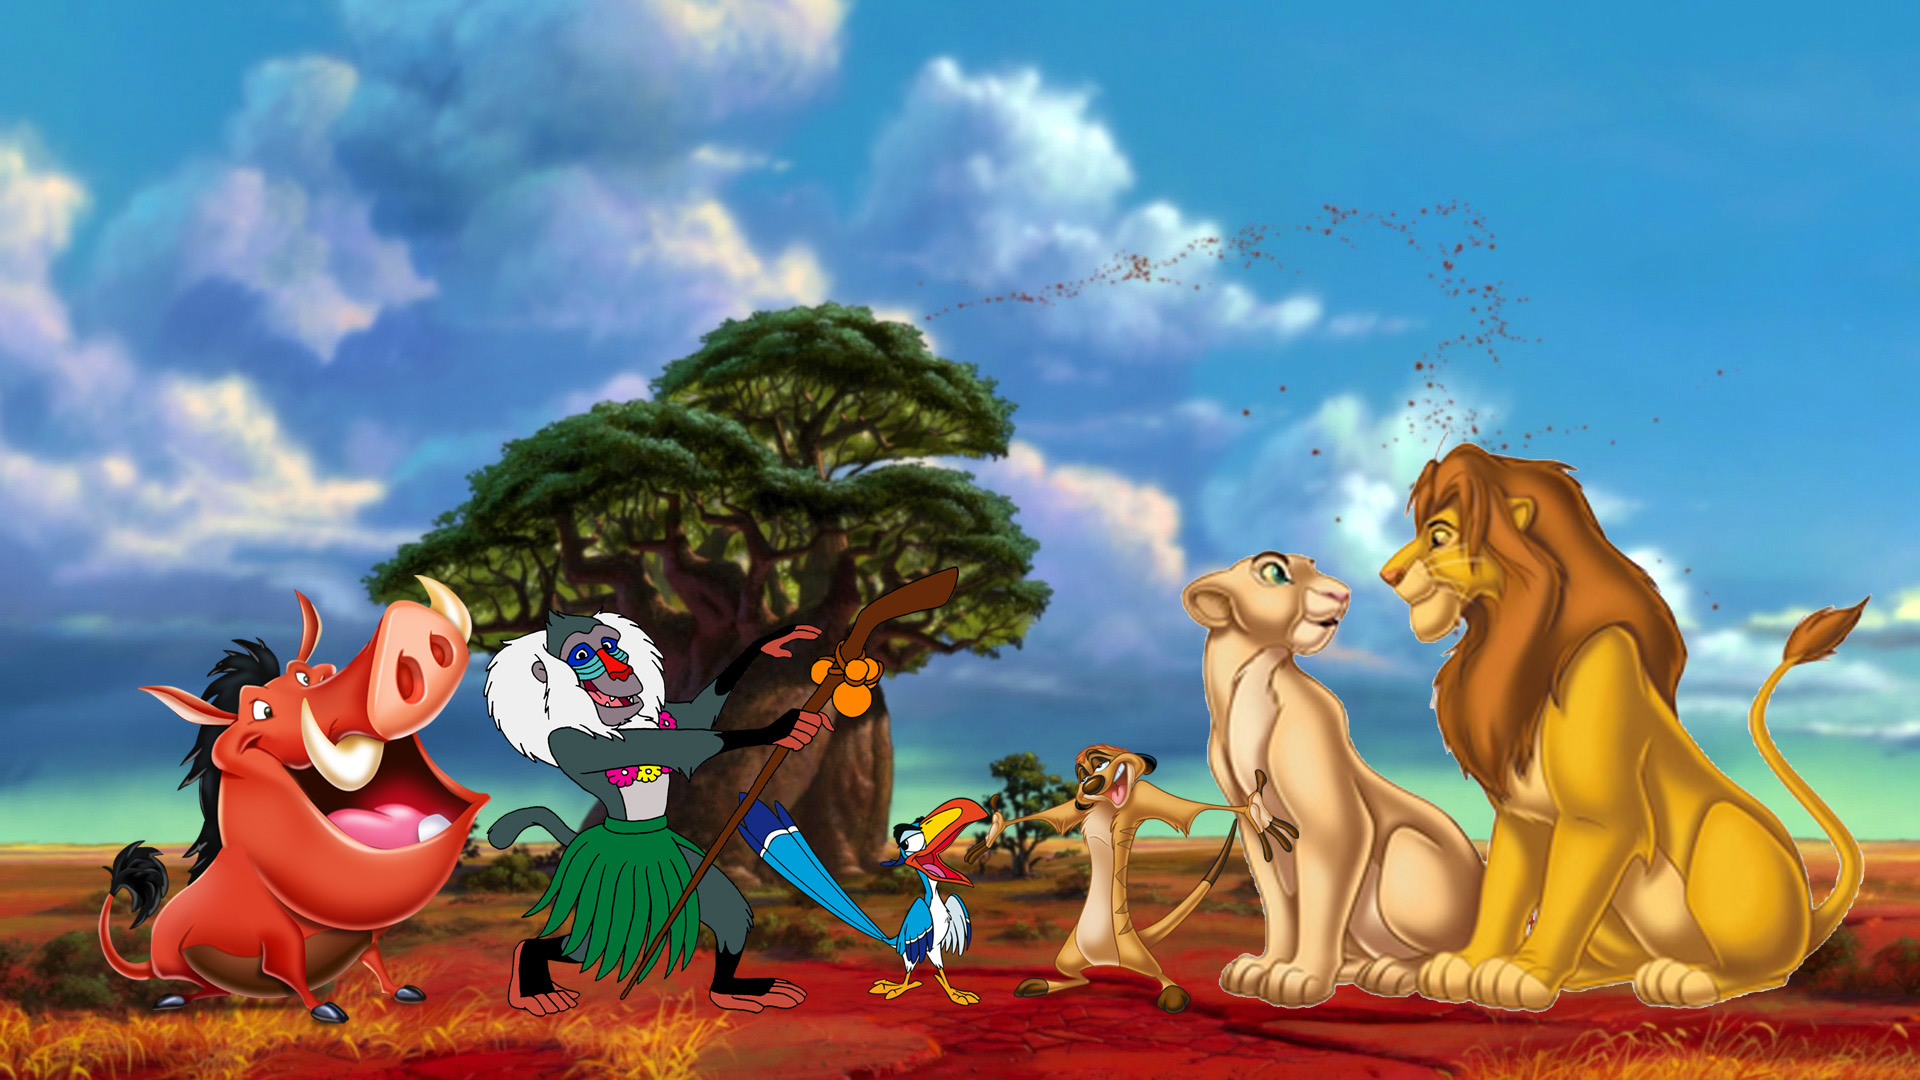 Lion King Wallpaper 1920x1080 Download Free Iphone Wallpapers